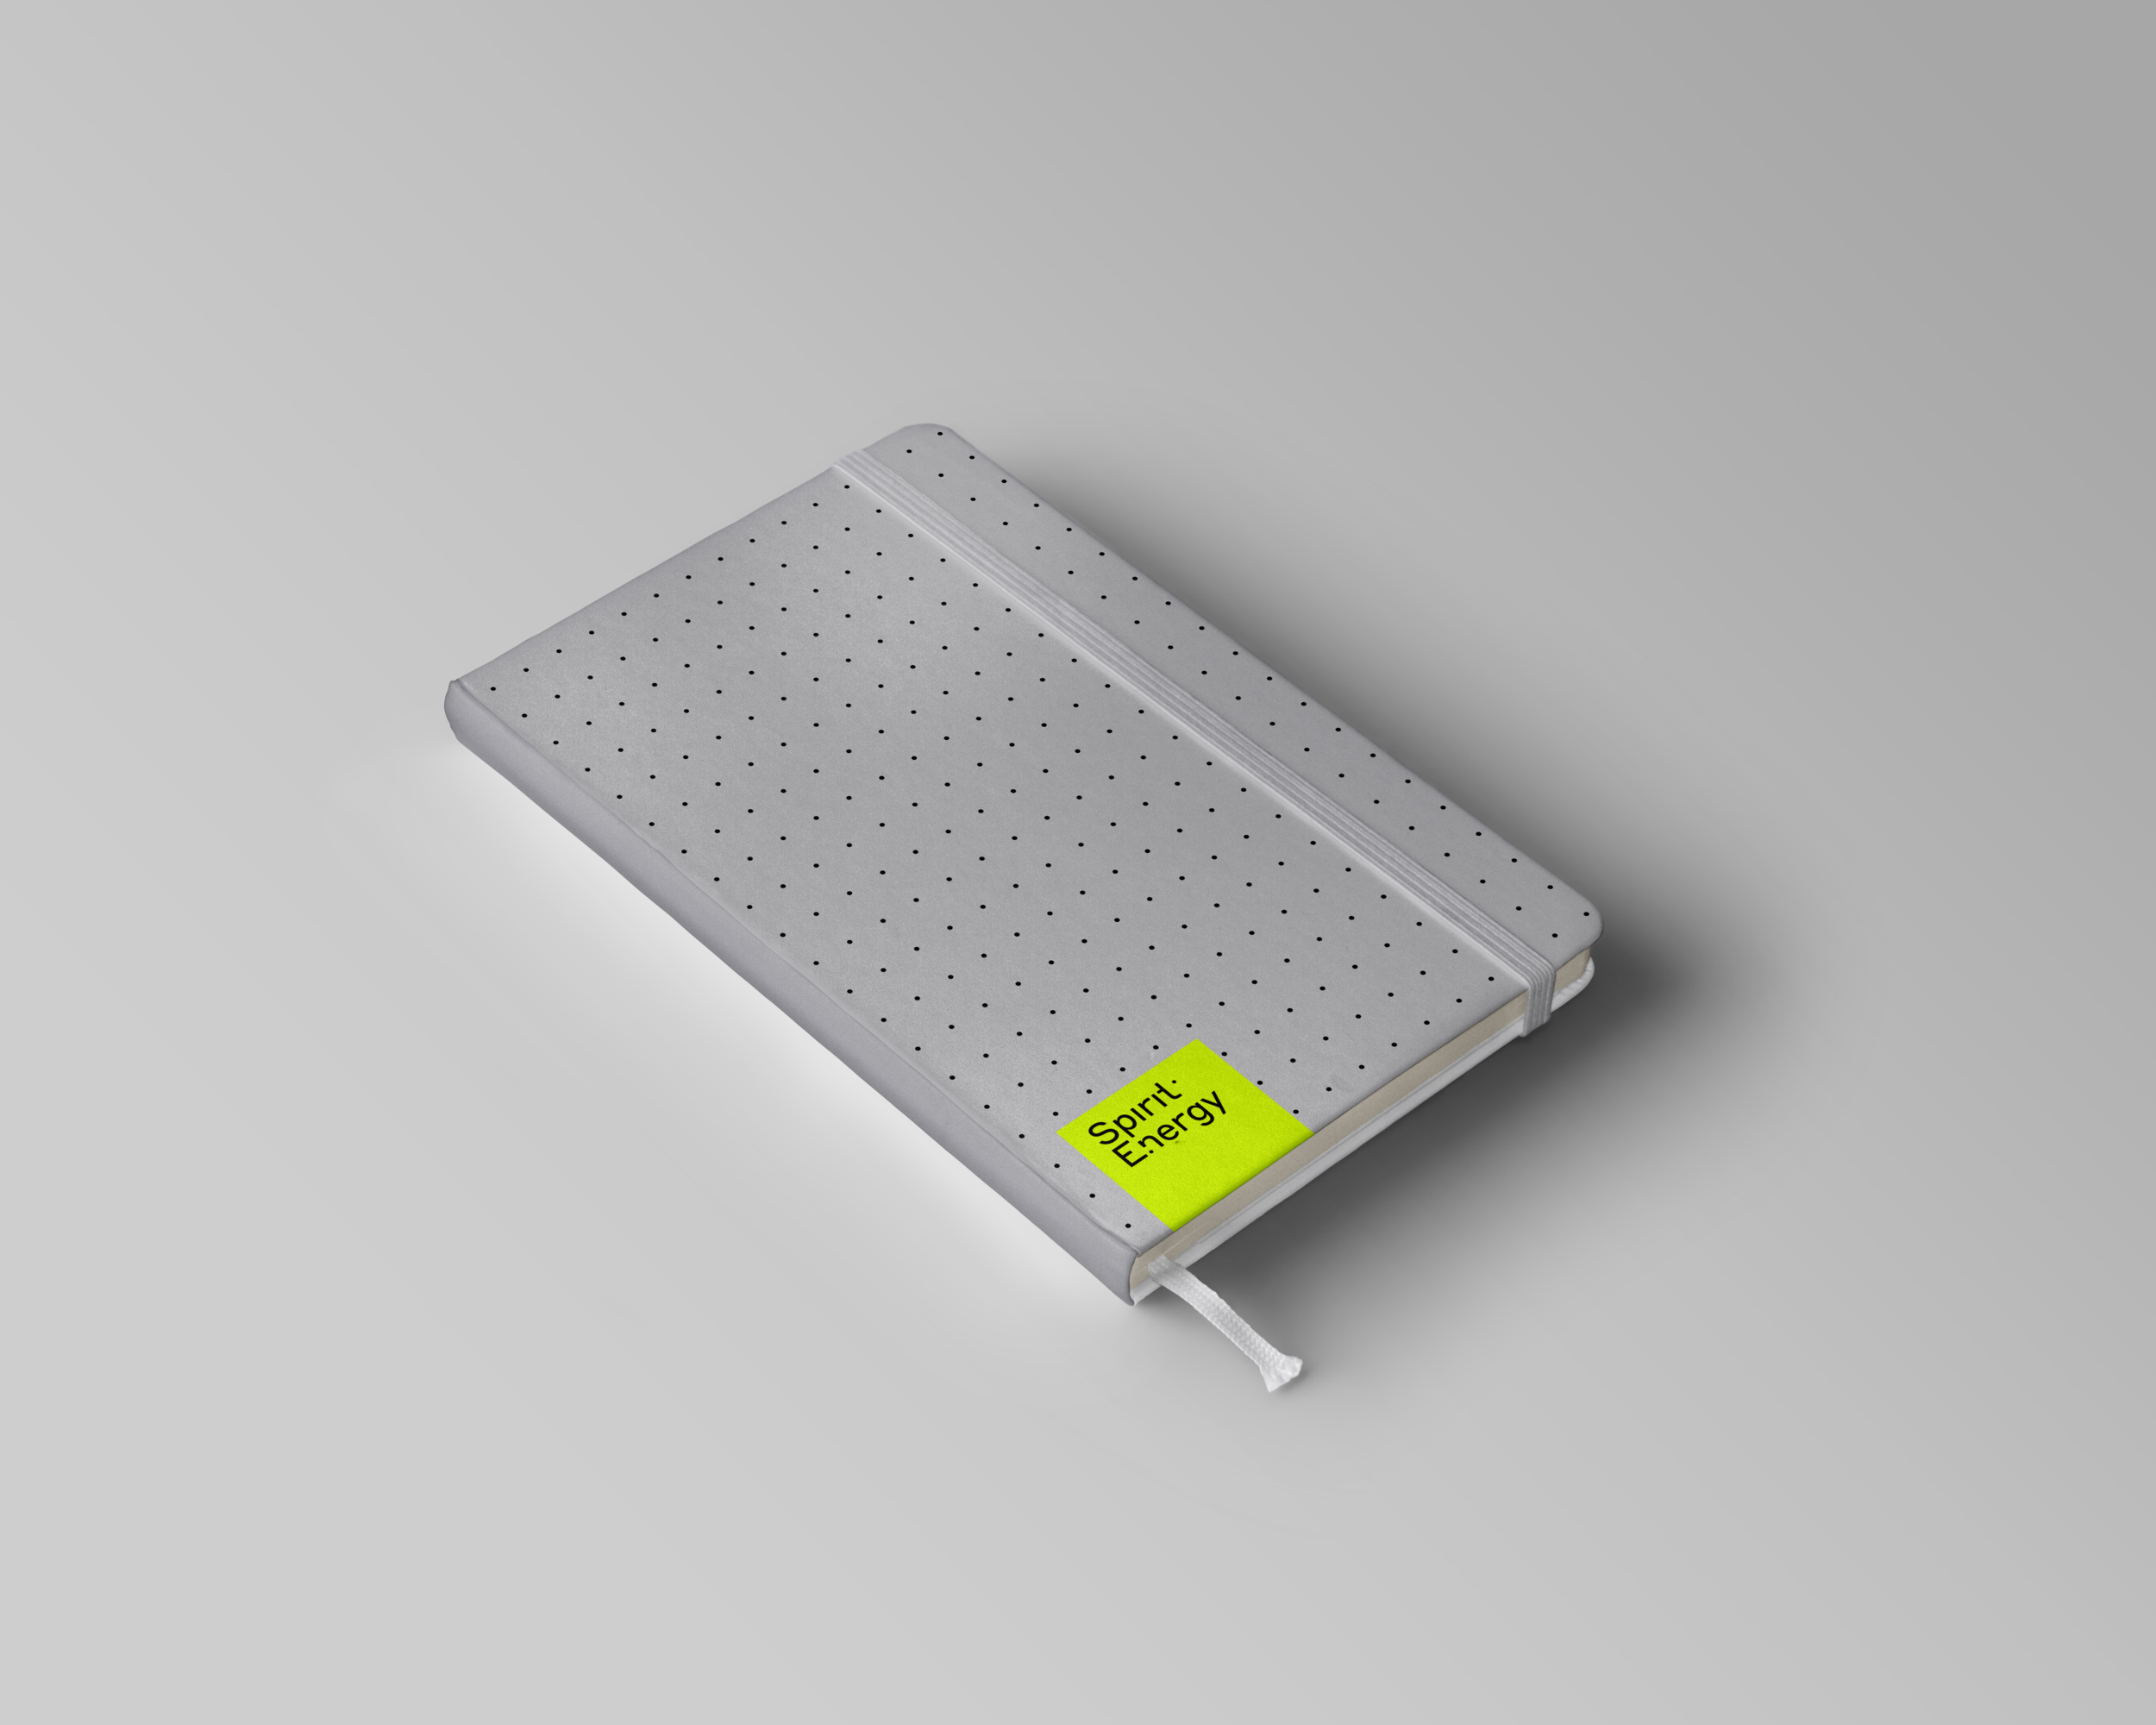 Notebook-Mockup-vol-2-Isometric-view.png